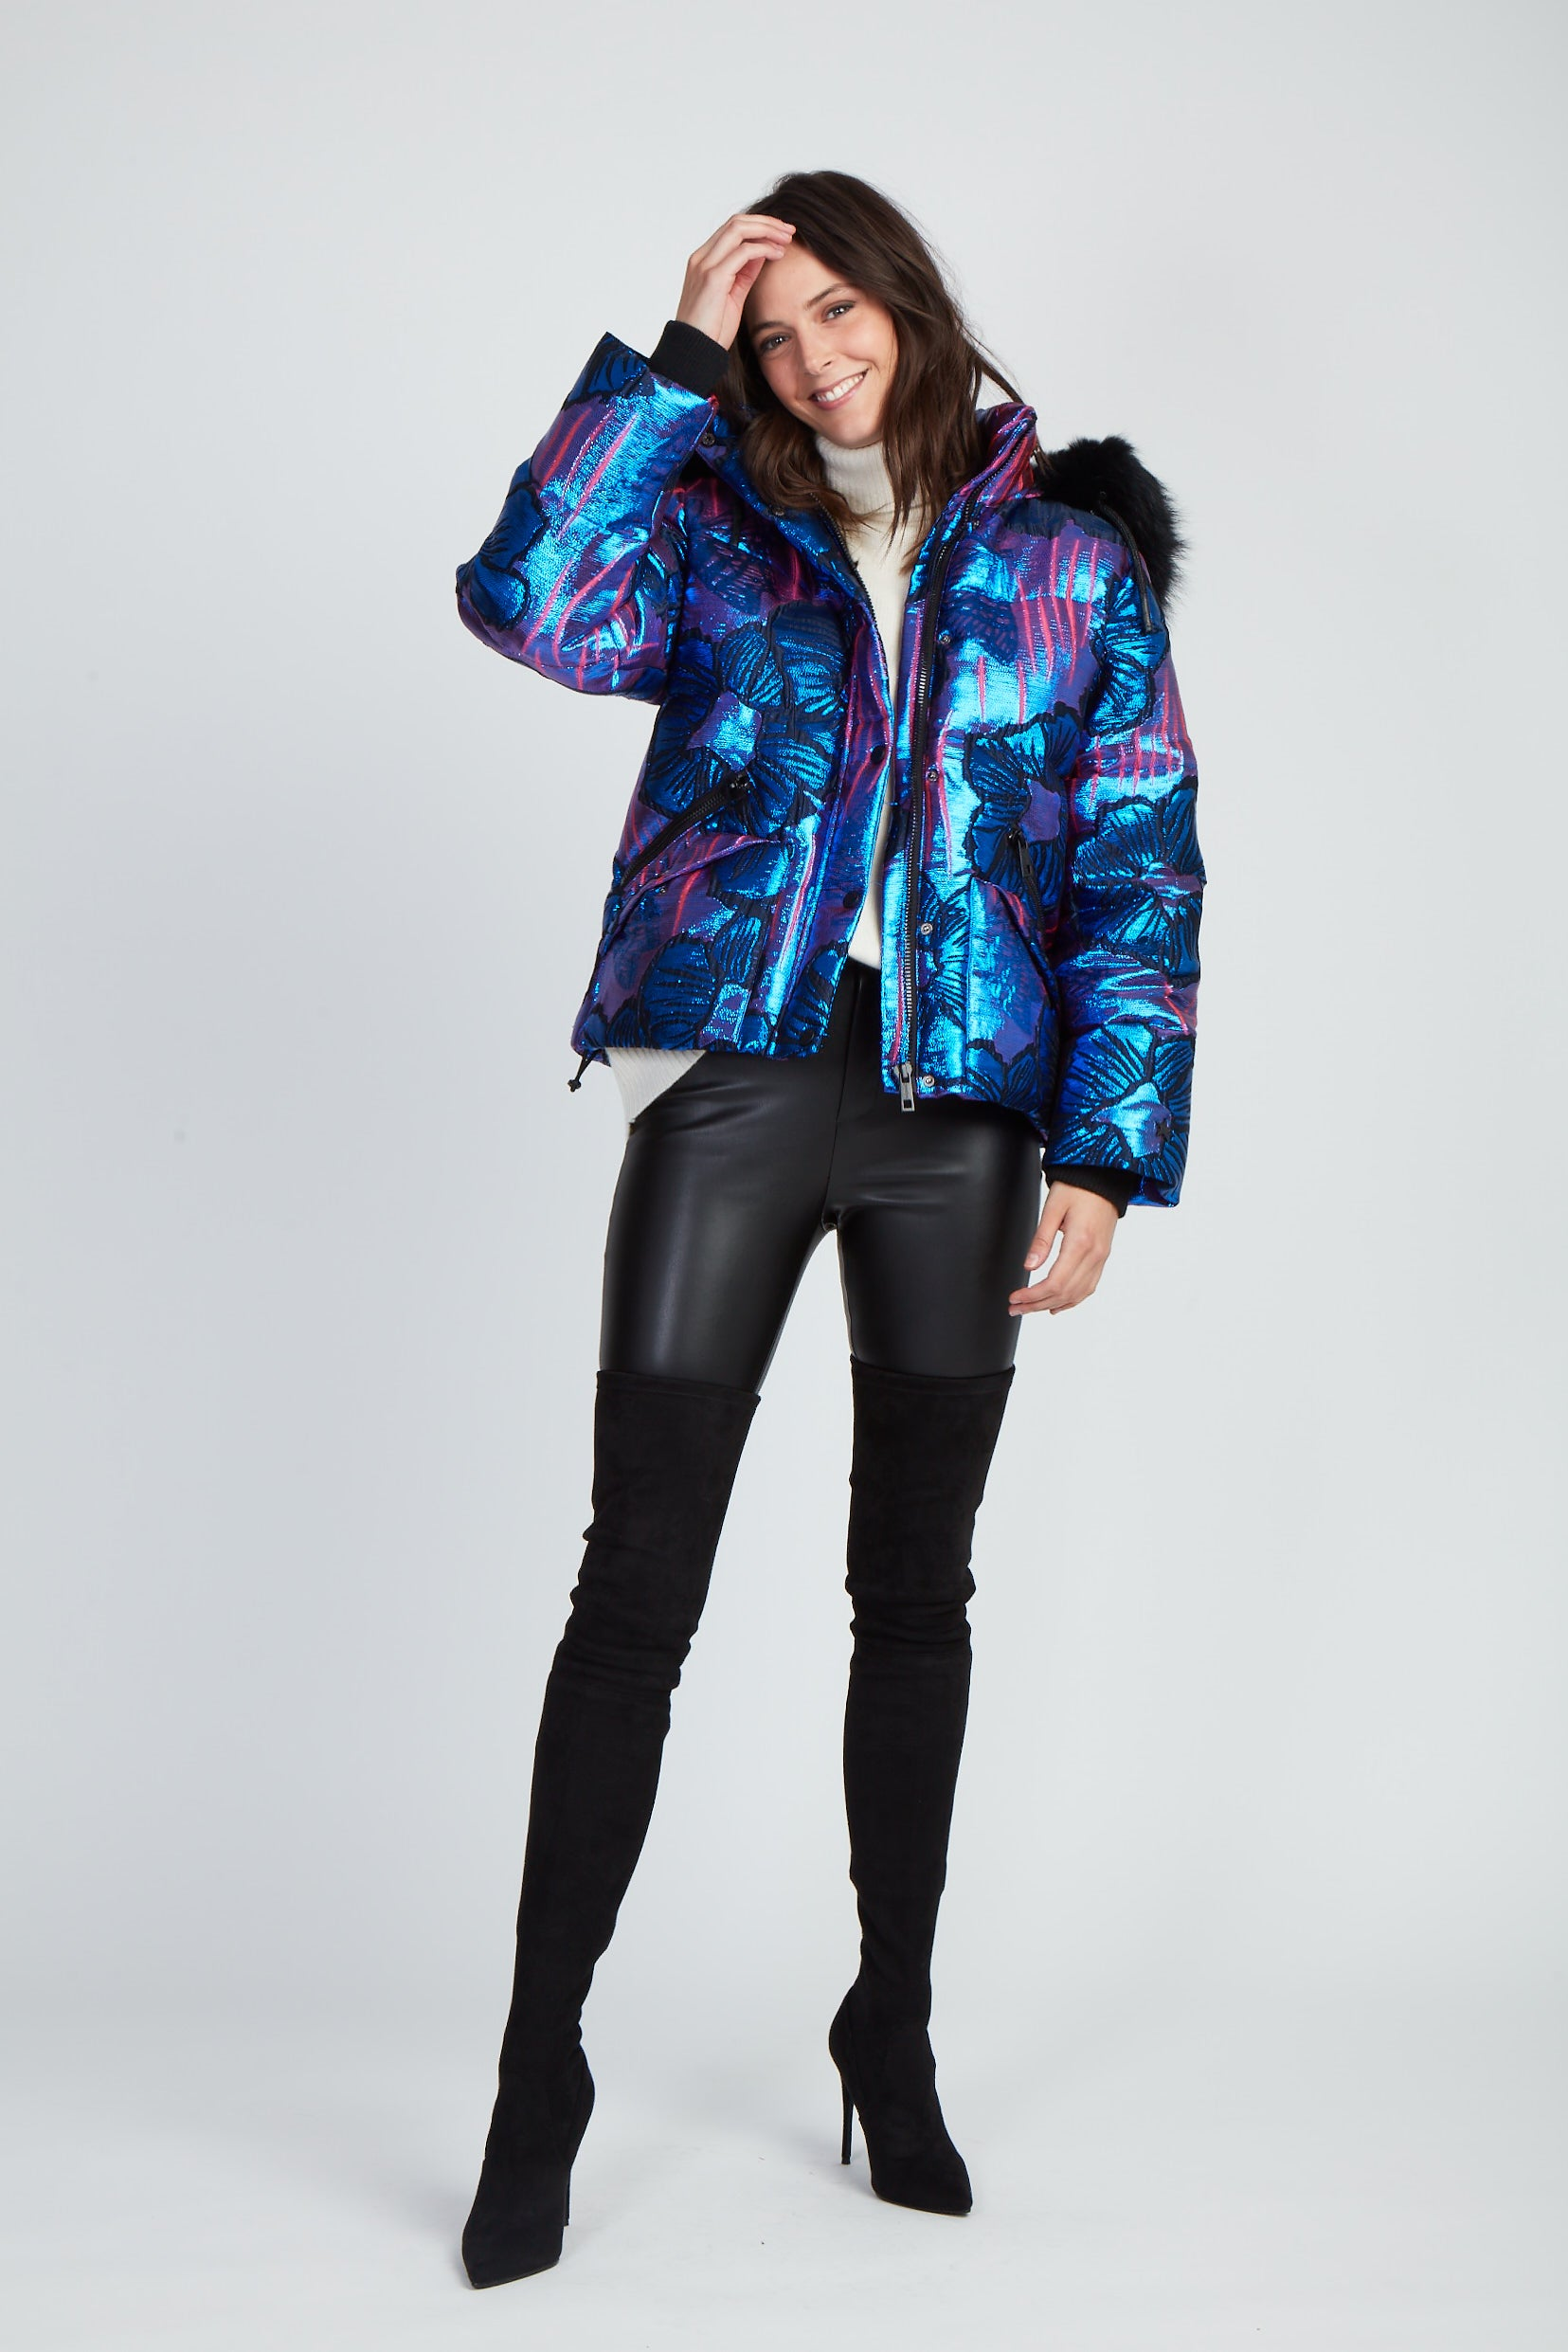 The You're My Shorty Puffer - Blue Floral